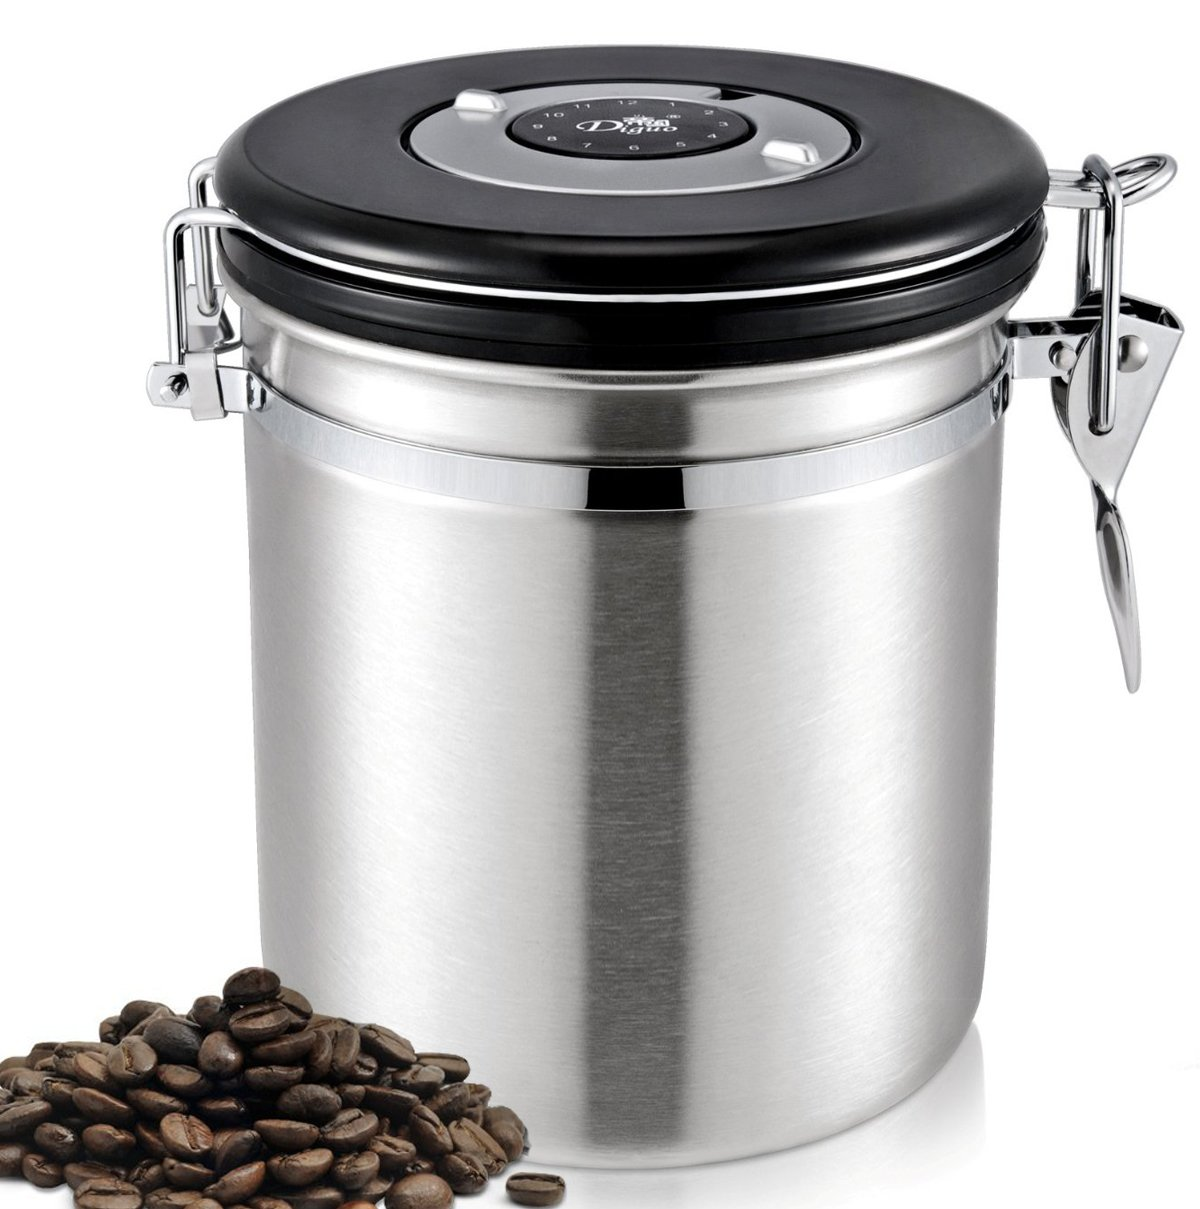 Diguo Coffee Storage Canister Premium Quality Stainless Steel Bean Container for Better Tasting Coffee - Vacuum Seal Vents Away Co2 Gas Coffee Bean Storage Tanks F-2022 (Silver,500g/17oz)